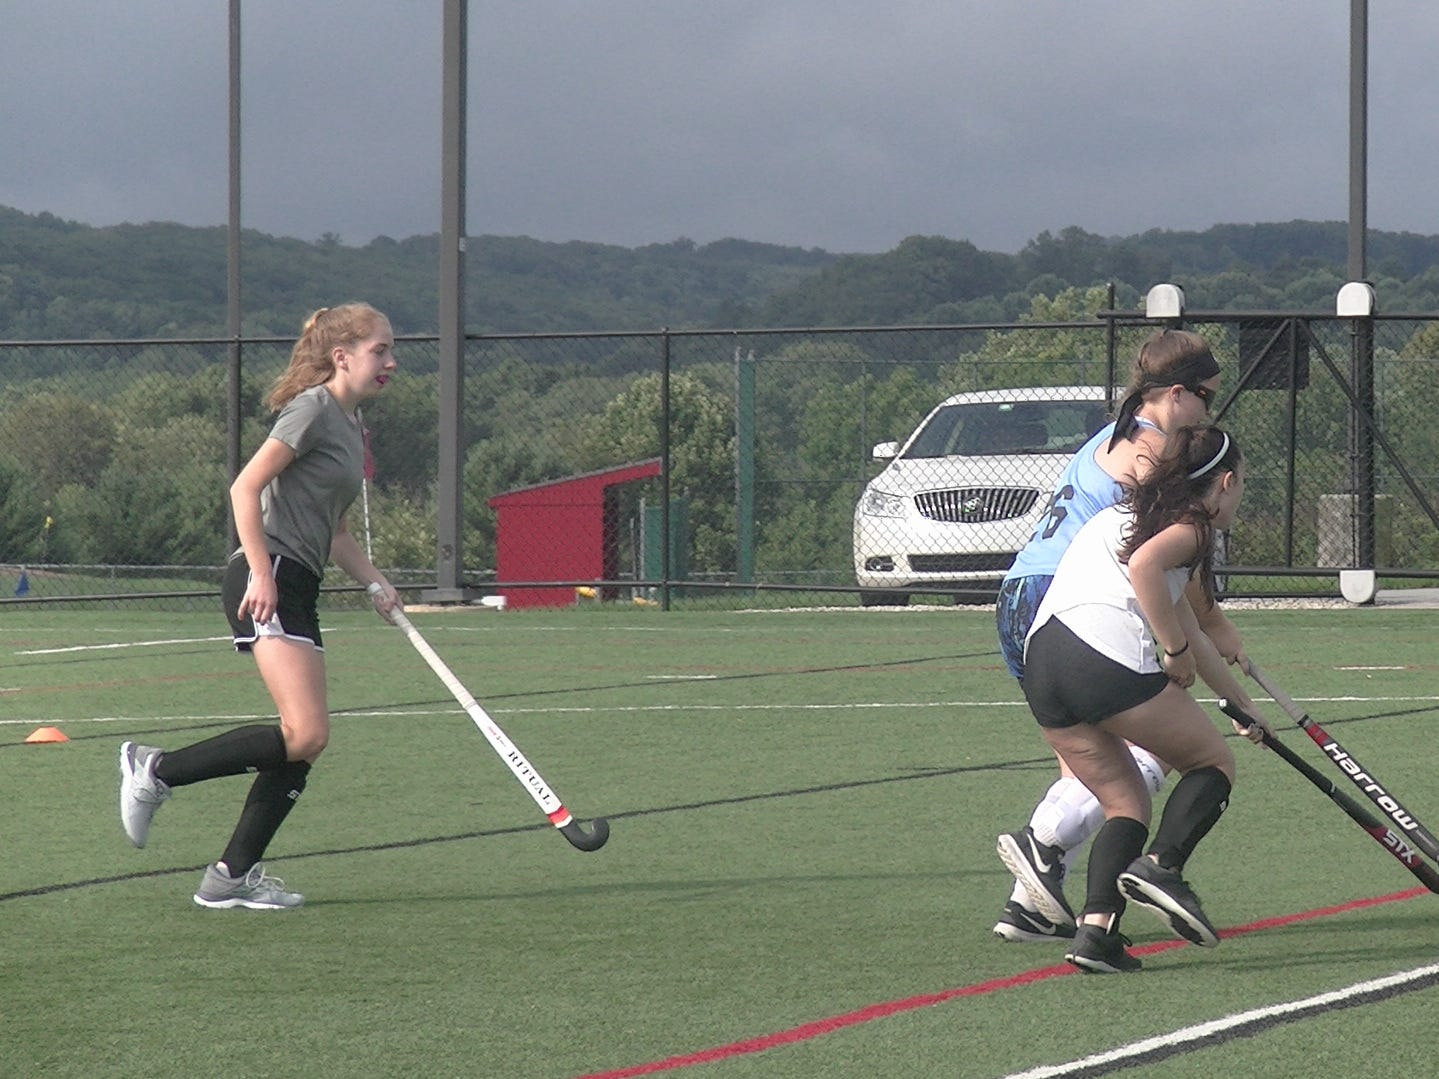 Susquehannock field hockey players battle for the ball during the first day of fall practice on Monday.